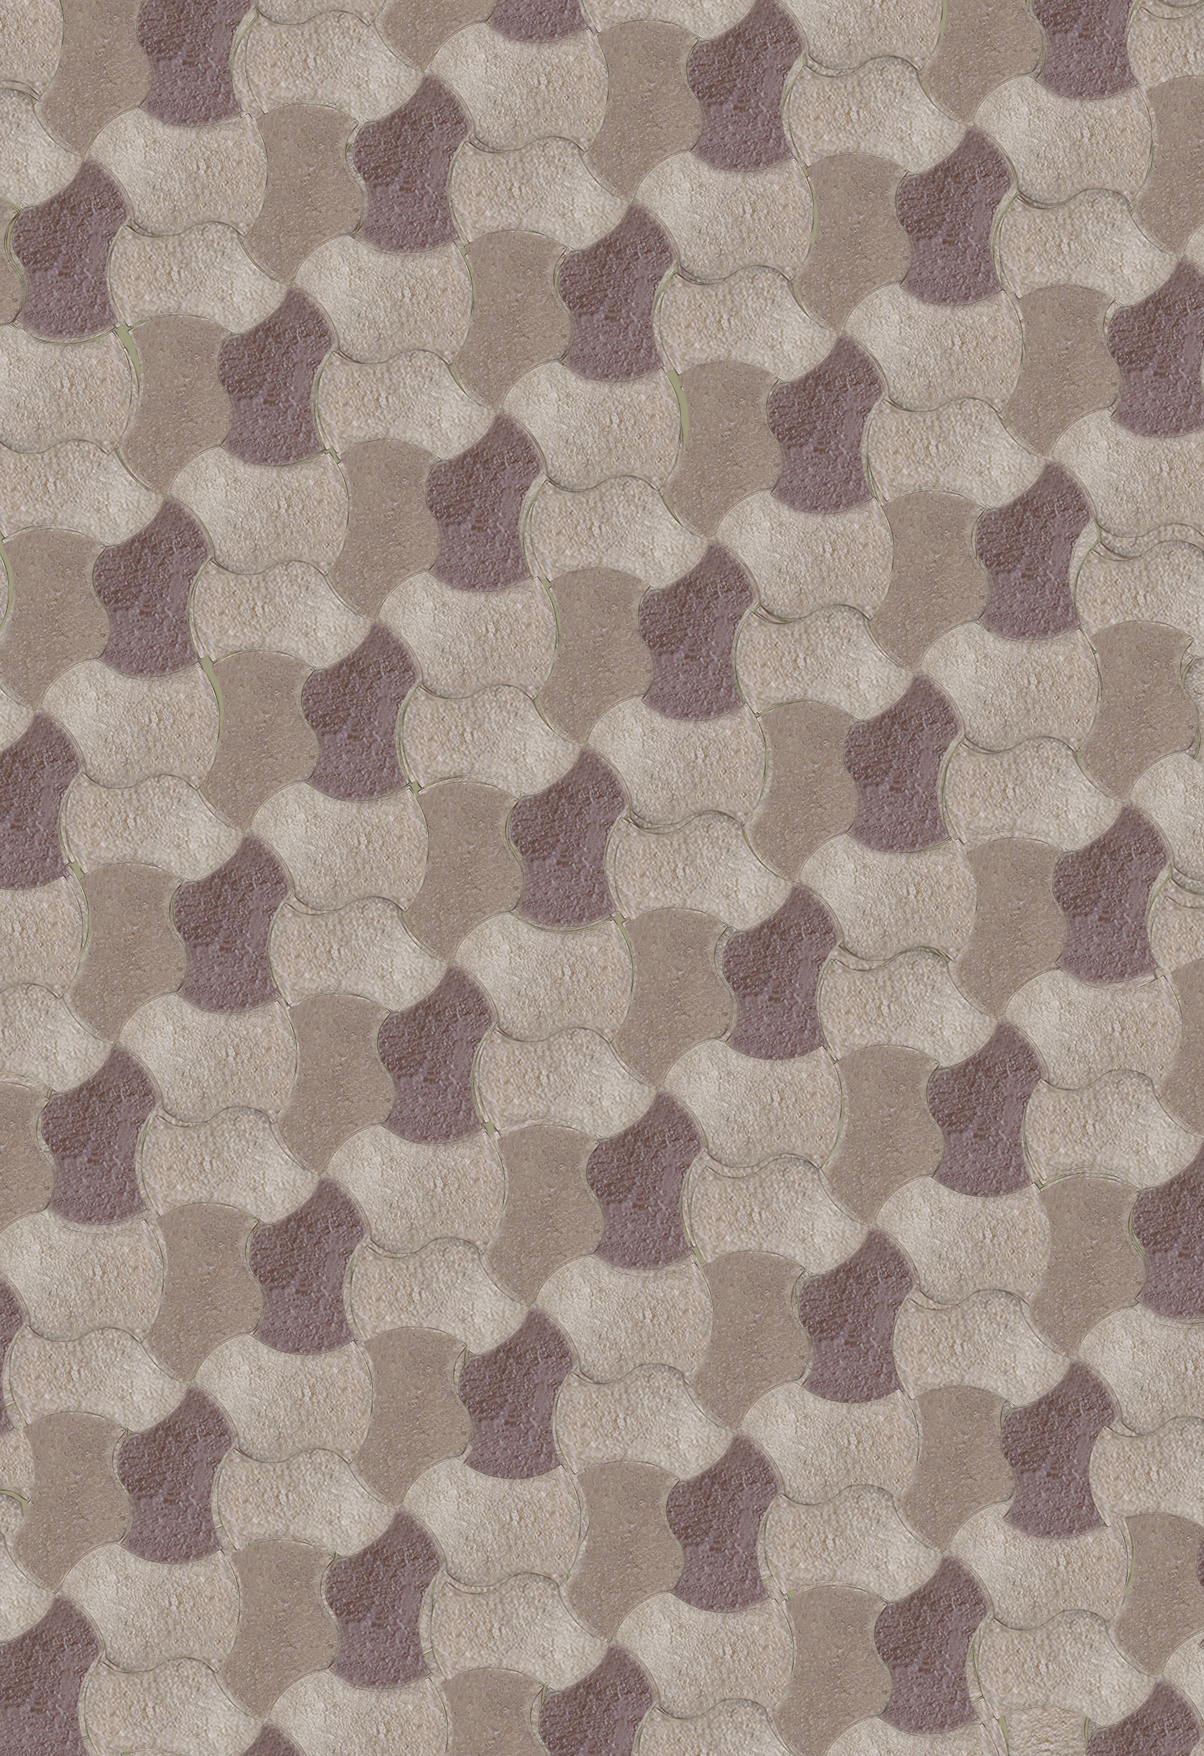 3 Color Alternating Weave Installation Pattern: Buff, Brown & Tan